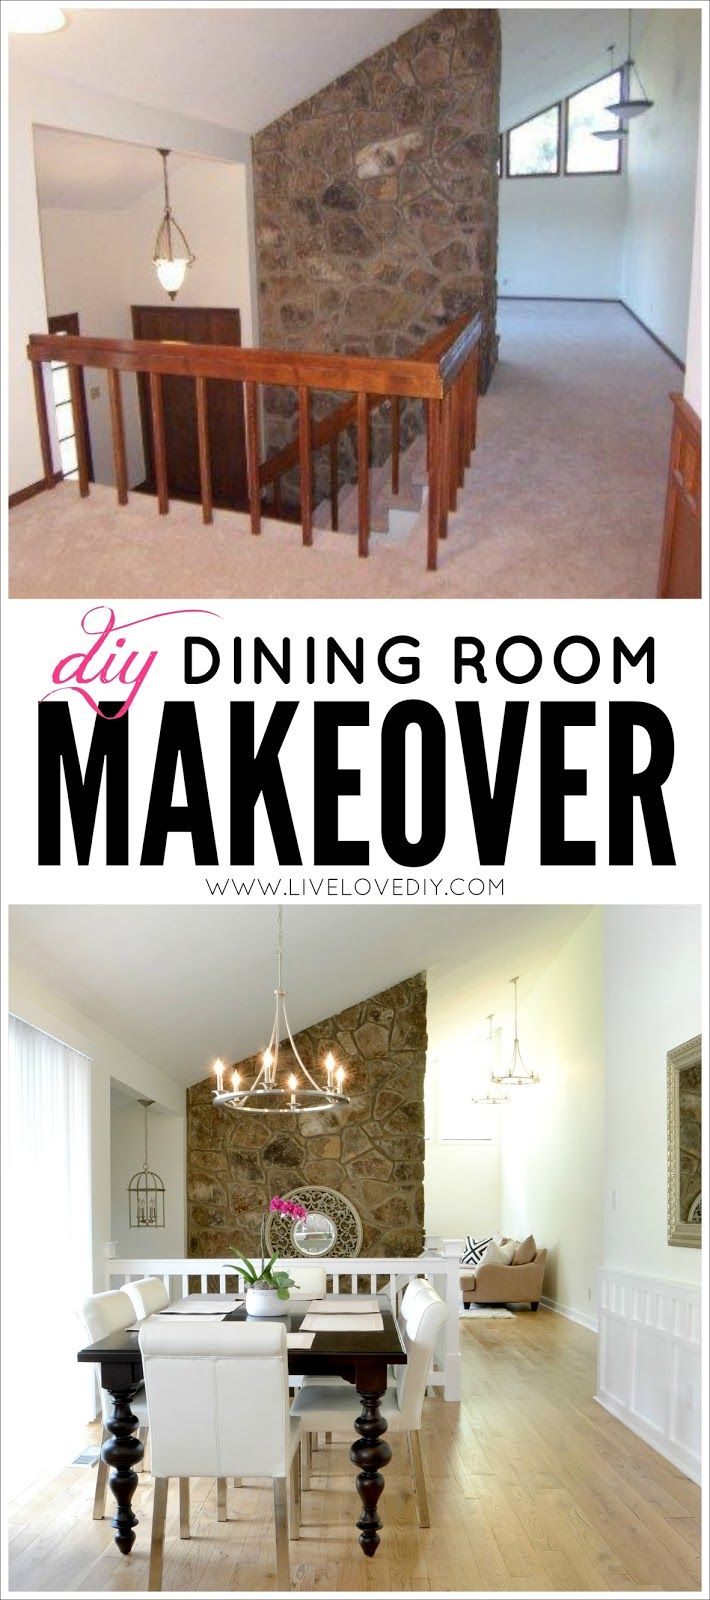 DIY Dining Room Makeover Ideas Love This Post So Many Practical On How